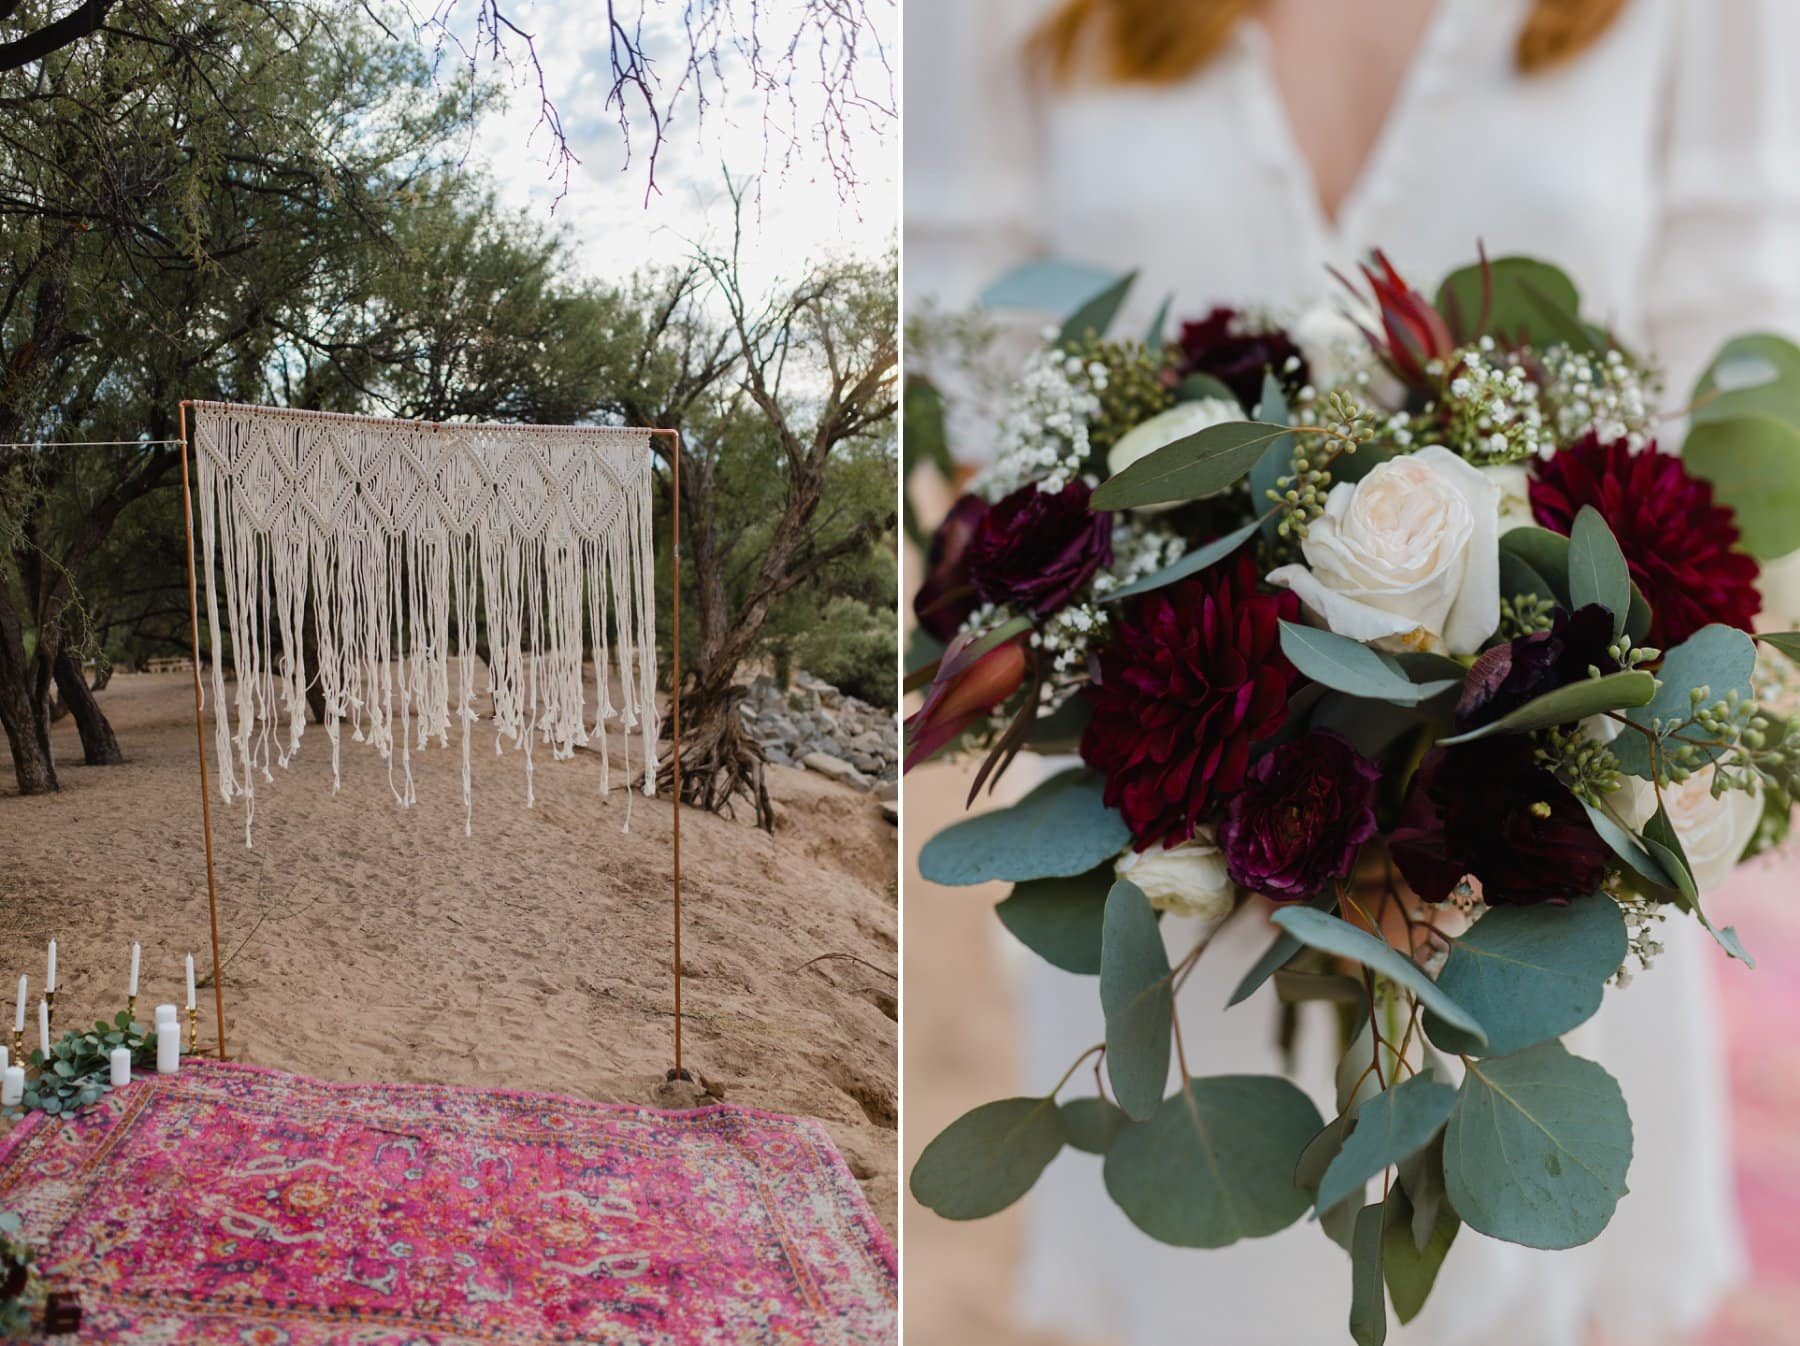 boho elopement in Arizona with macrame backdrop and rugs